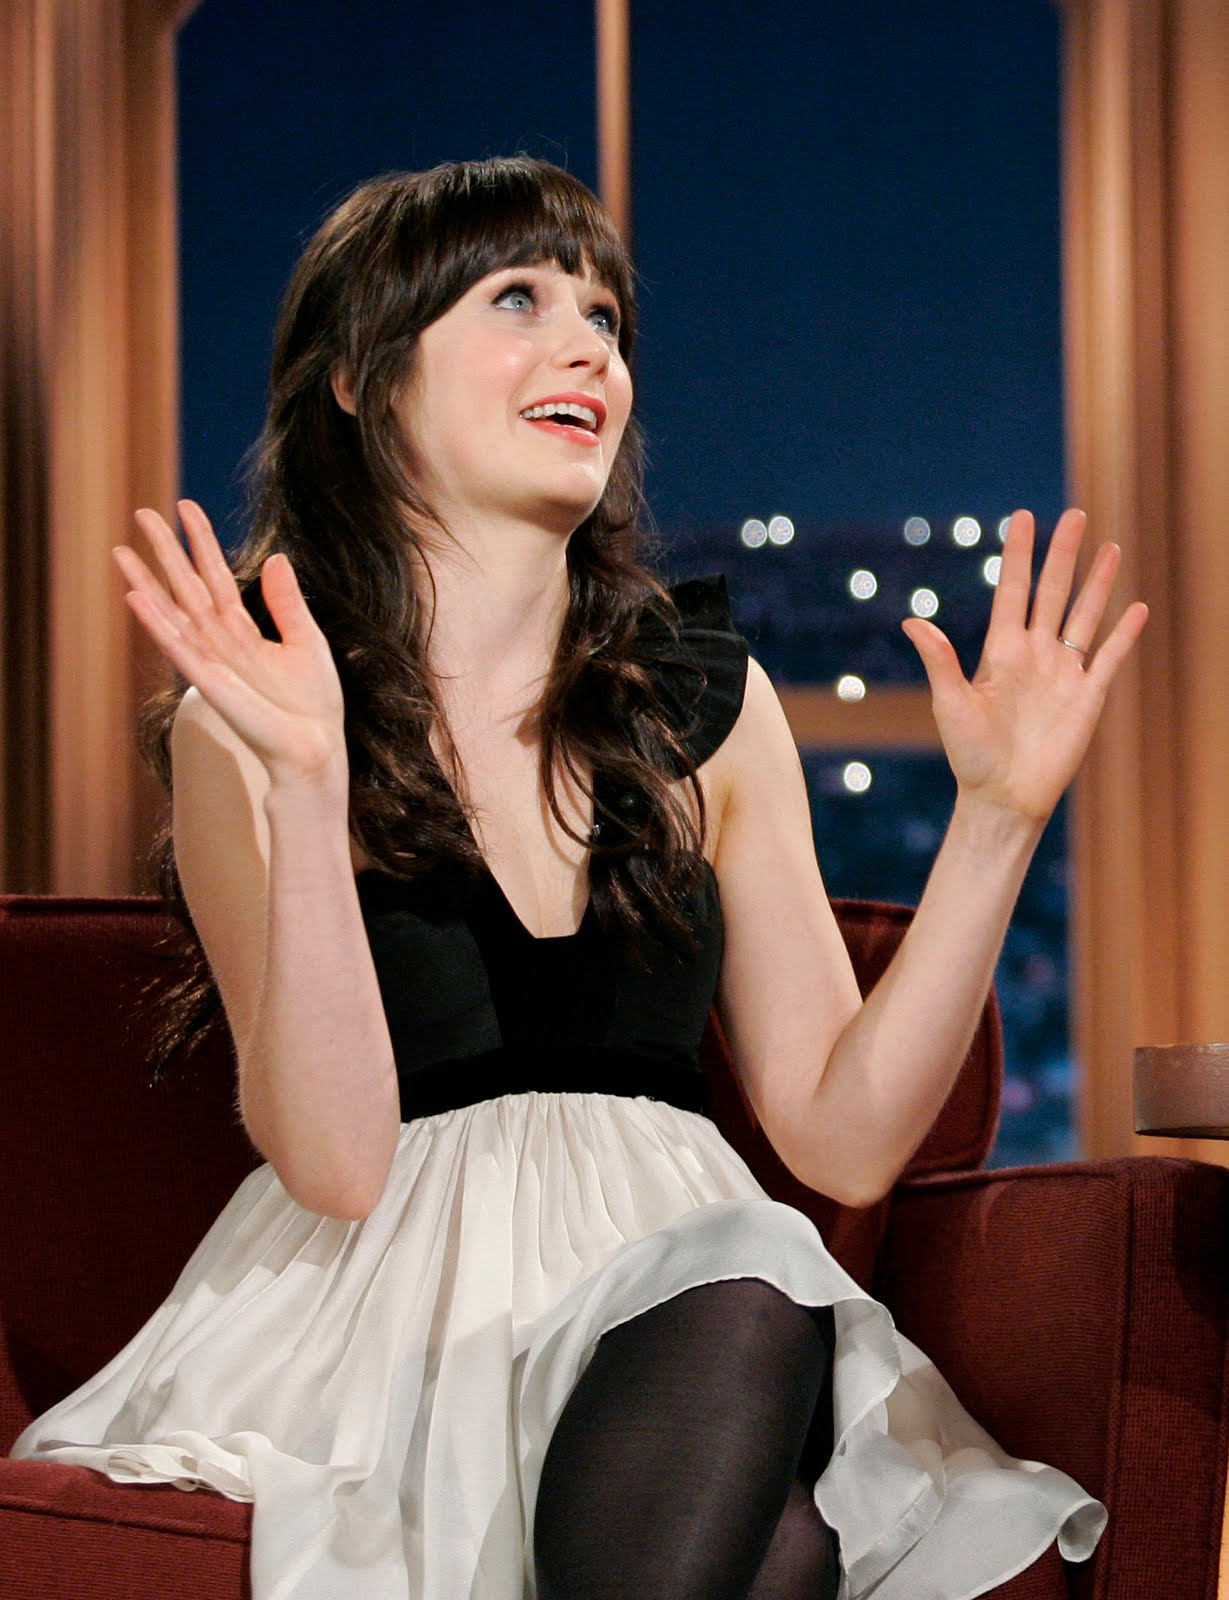 Late Late Show with Craig Ferguson April 2 2009 zooey deschanel 5343450 1966 2560 britney spears and kevin federline video. nude kevin federline « michelle ...